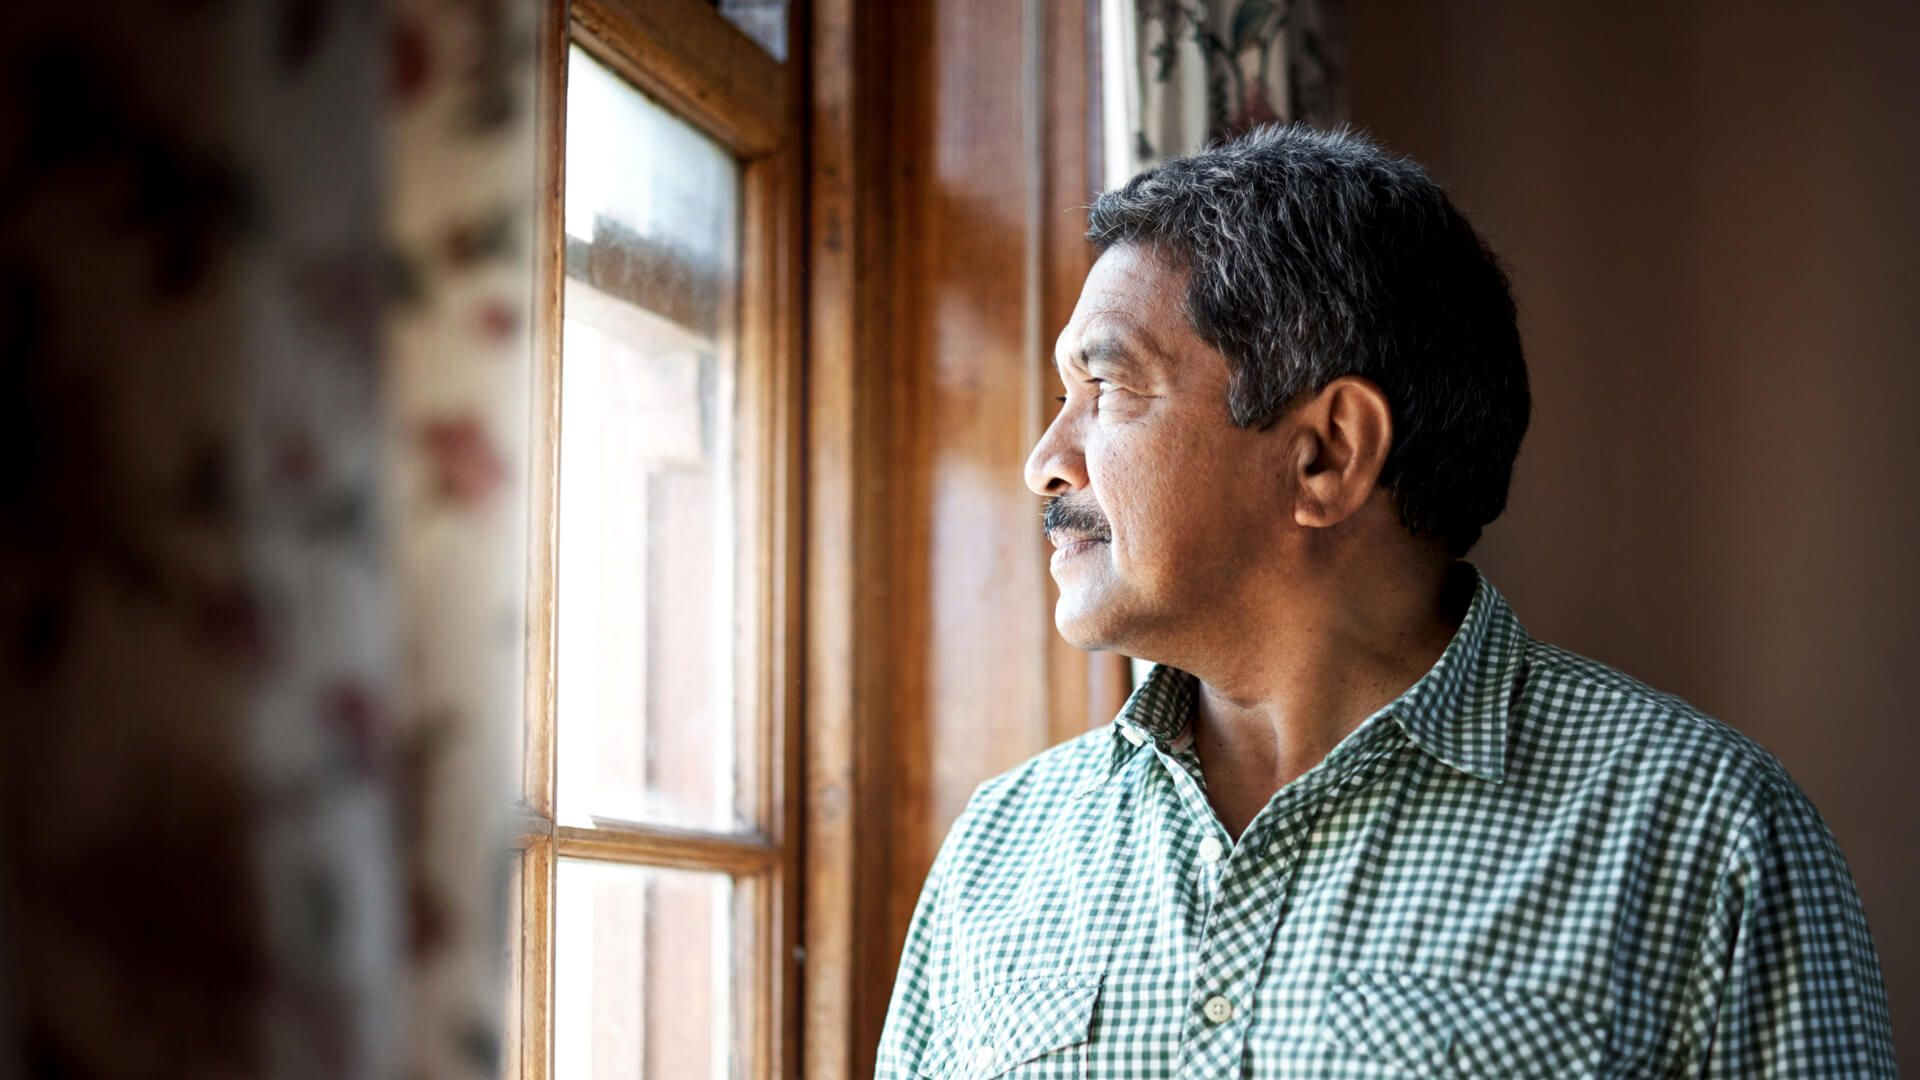 Senior man looking out the window at home